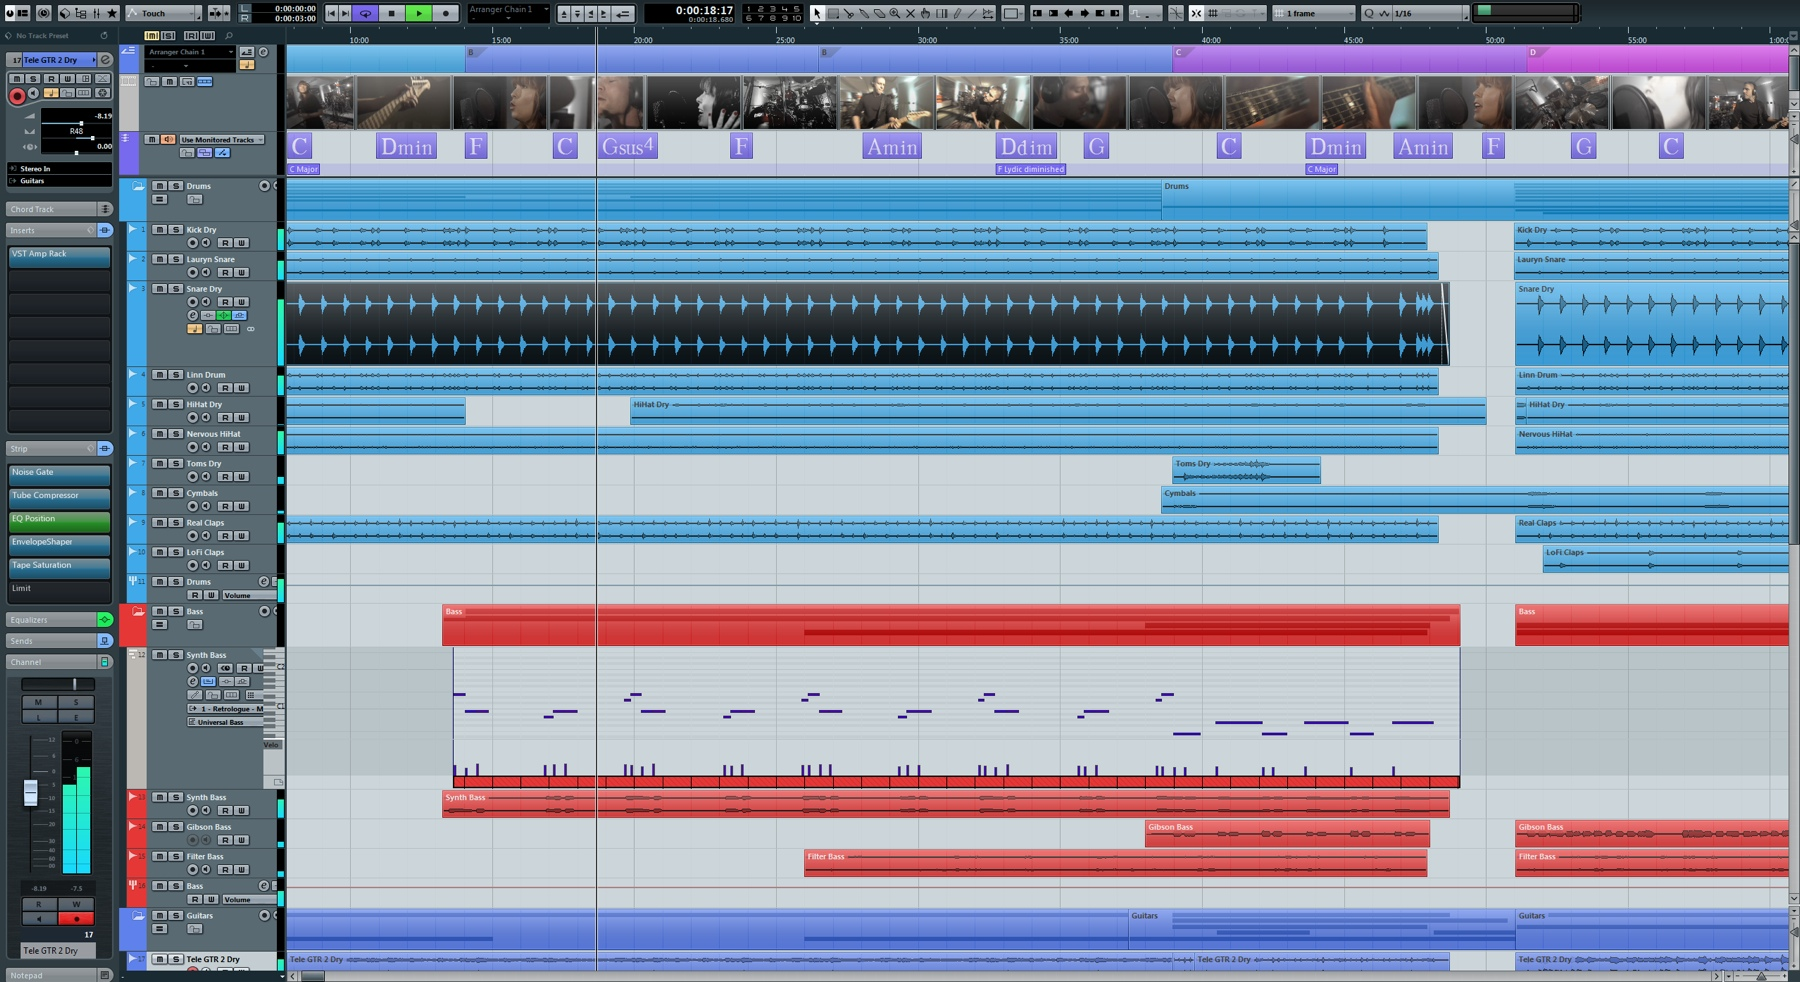 http://houseonmag.com/wp-content/uploads/2013/02/Cubase7-xlarge.jpg